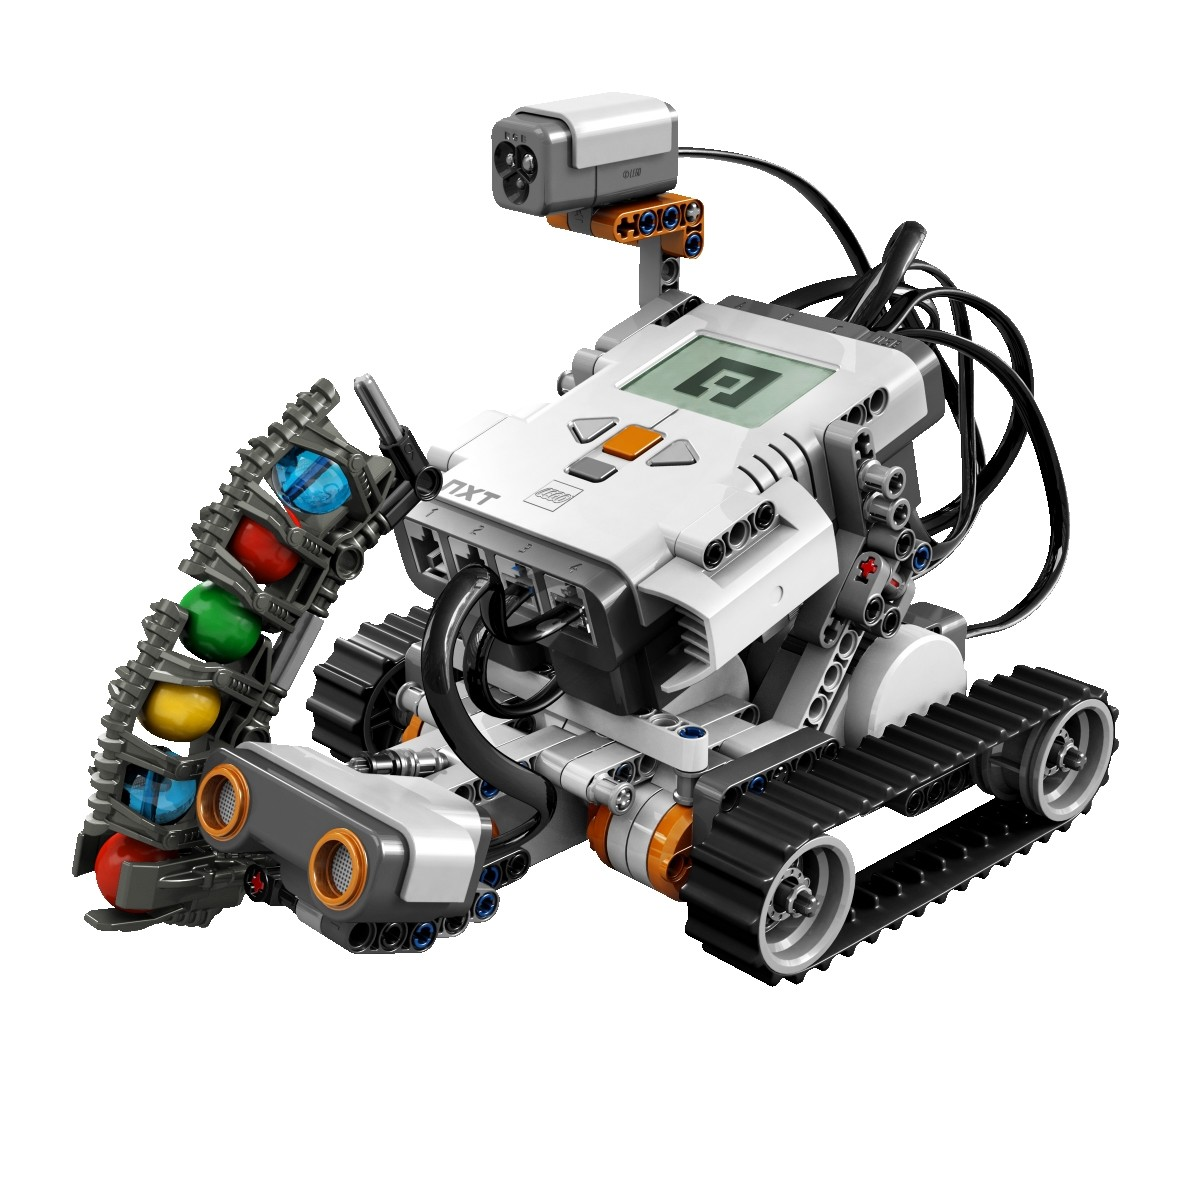 Lego mindstorms nxt 2.0 robotic invention system